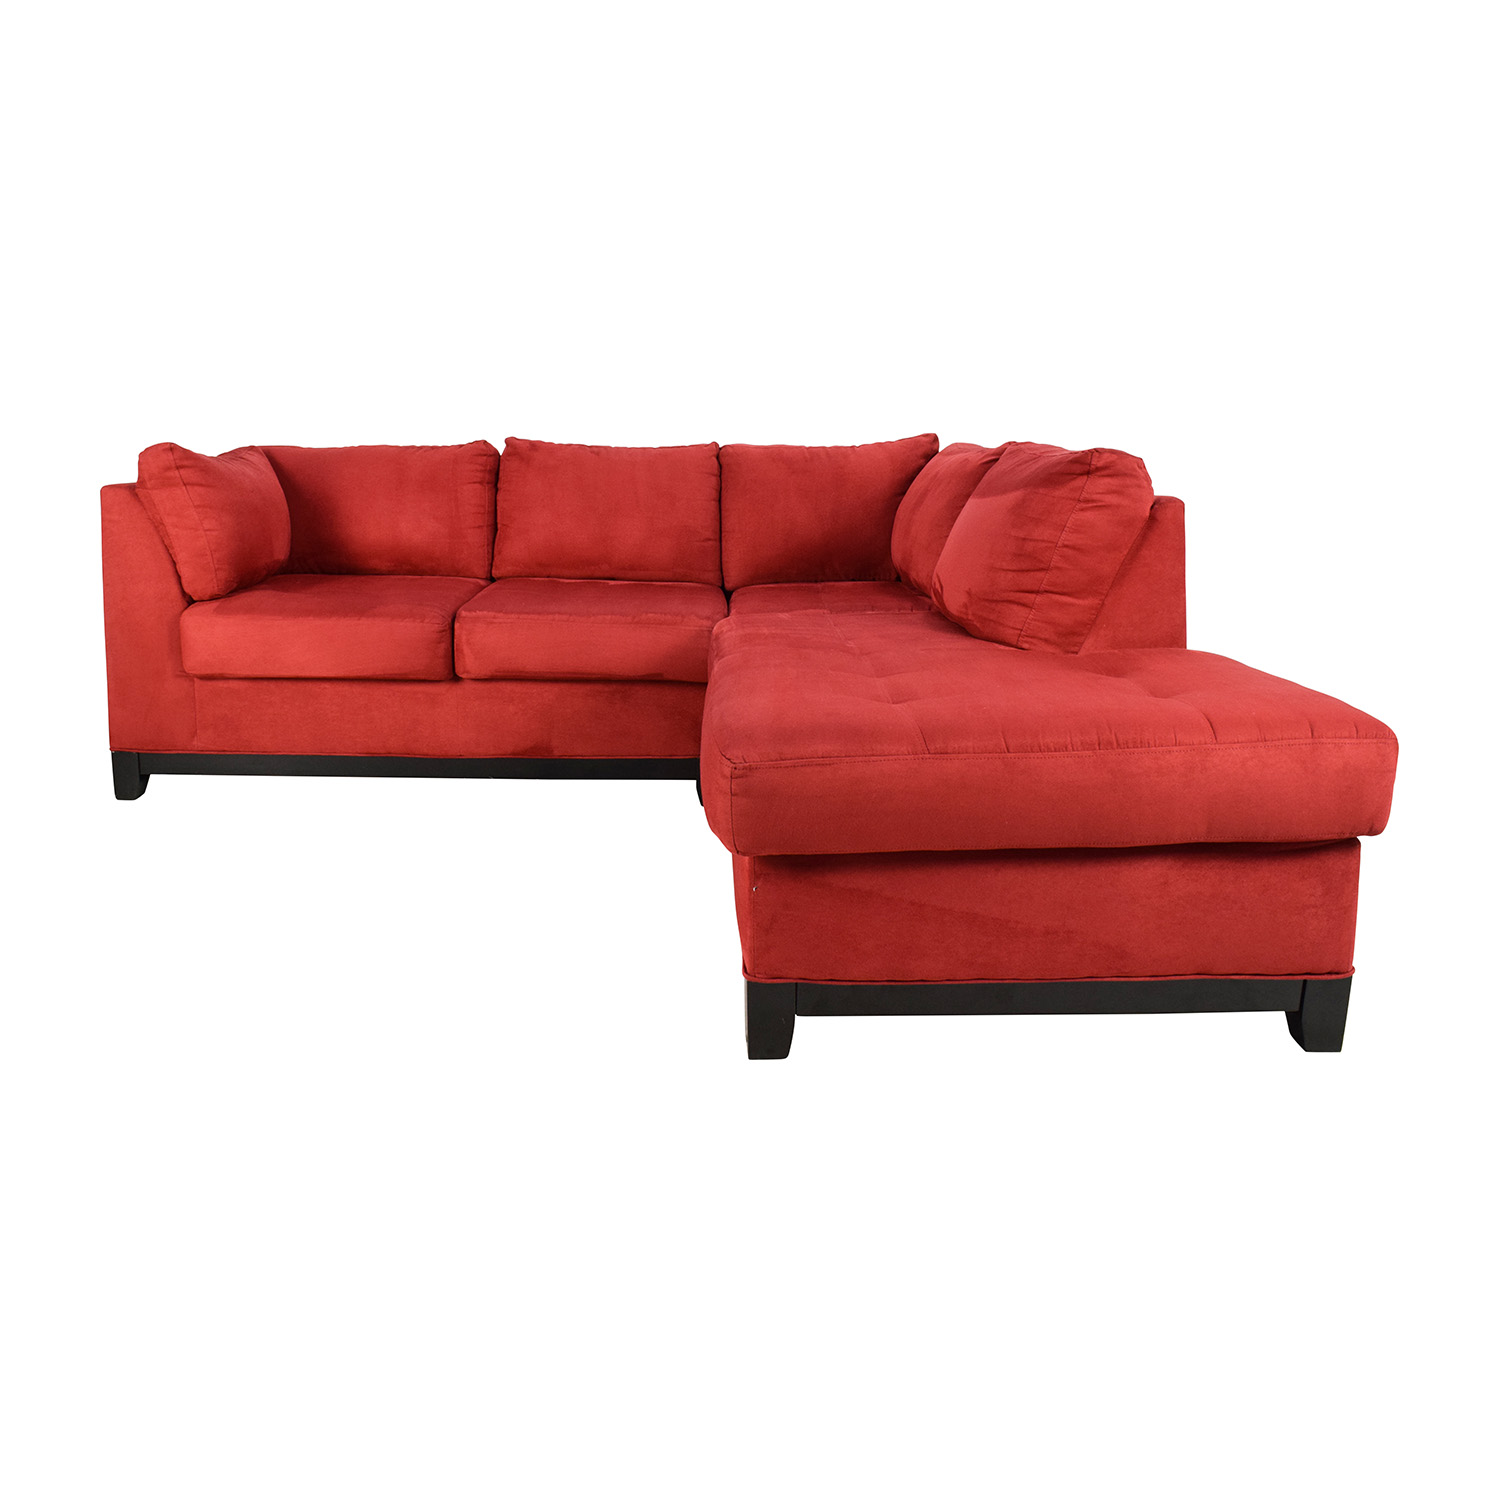 red sofa sectional gray cover audidatlevante